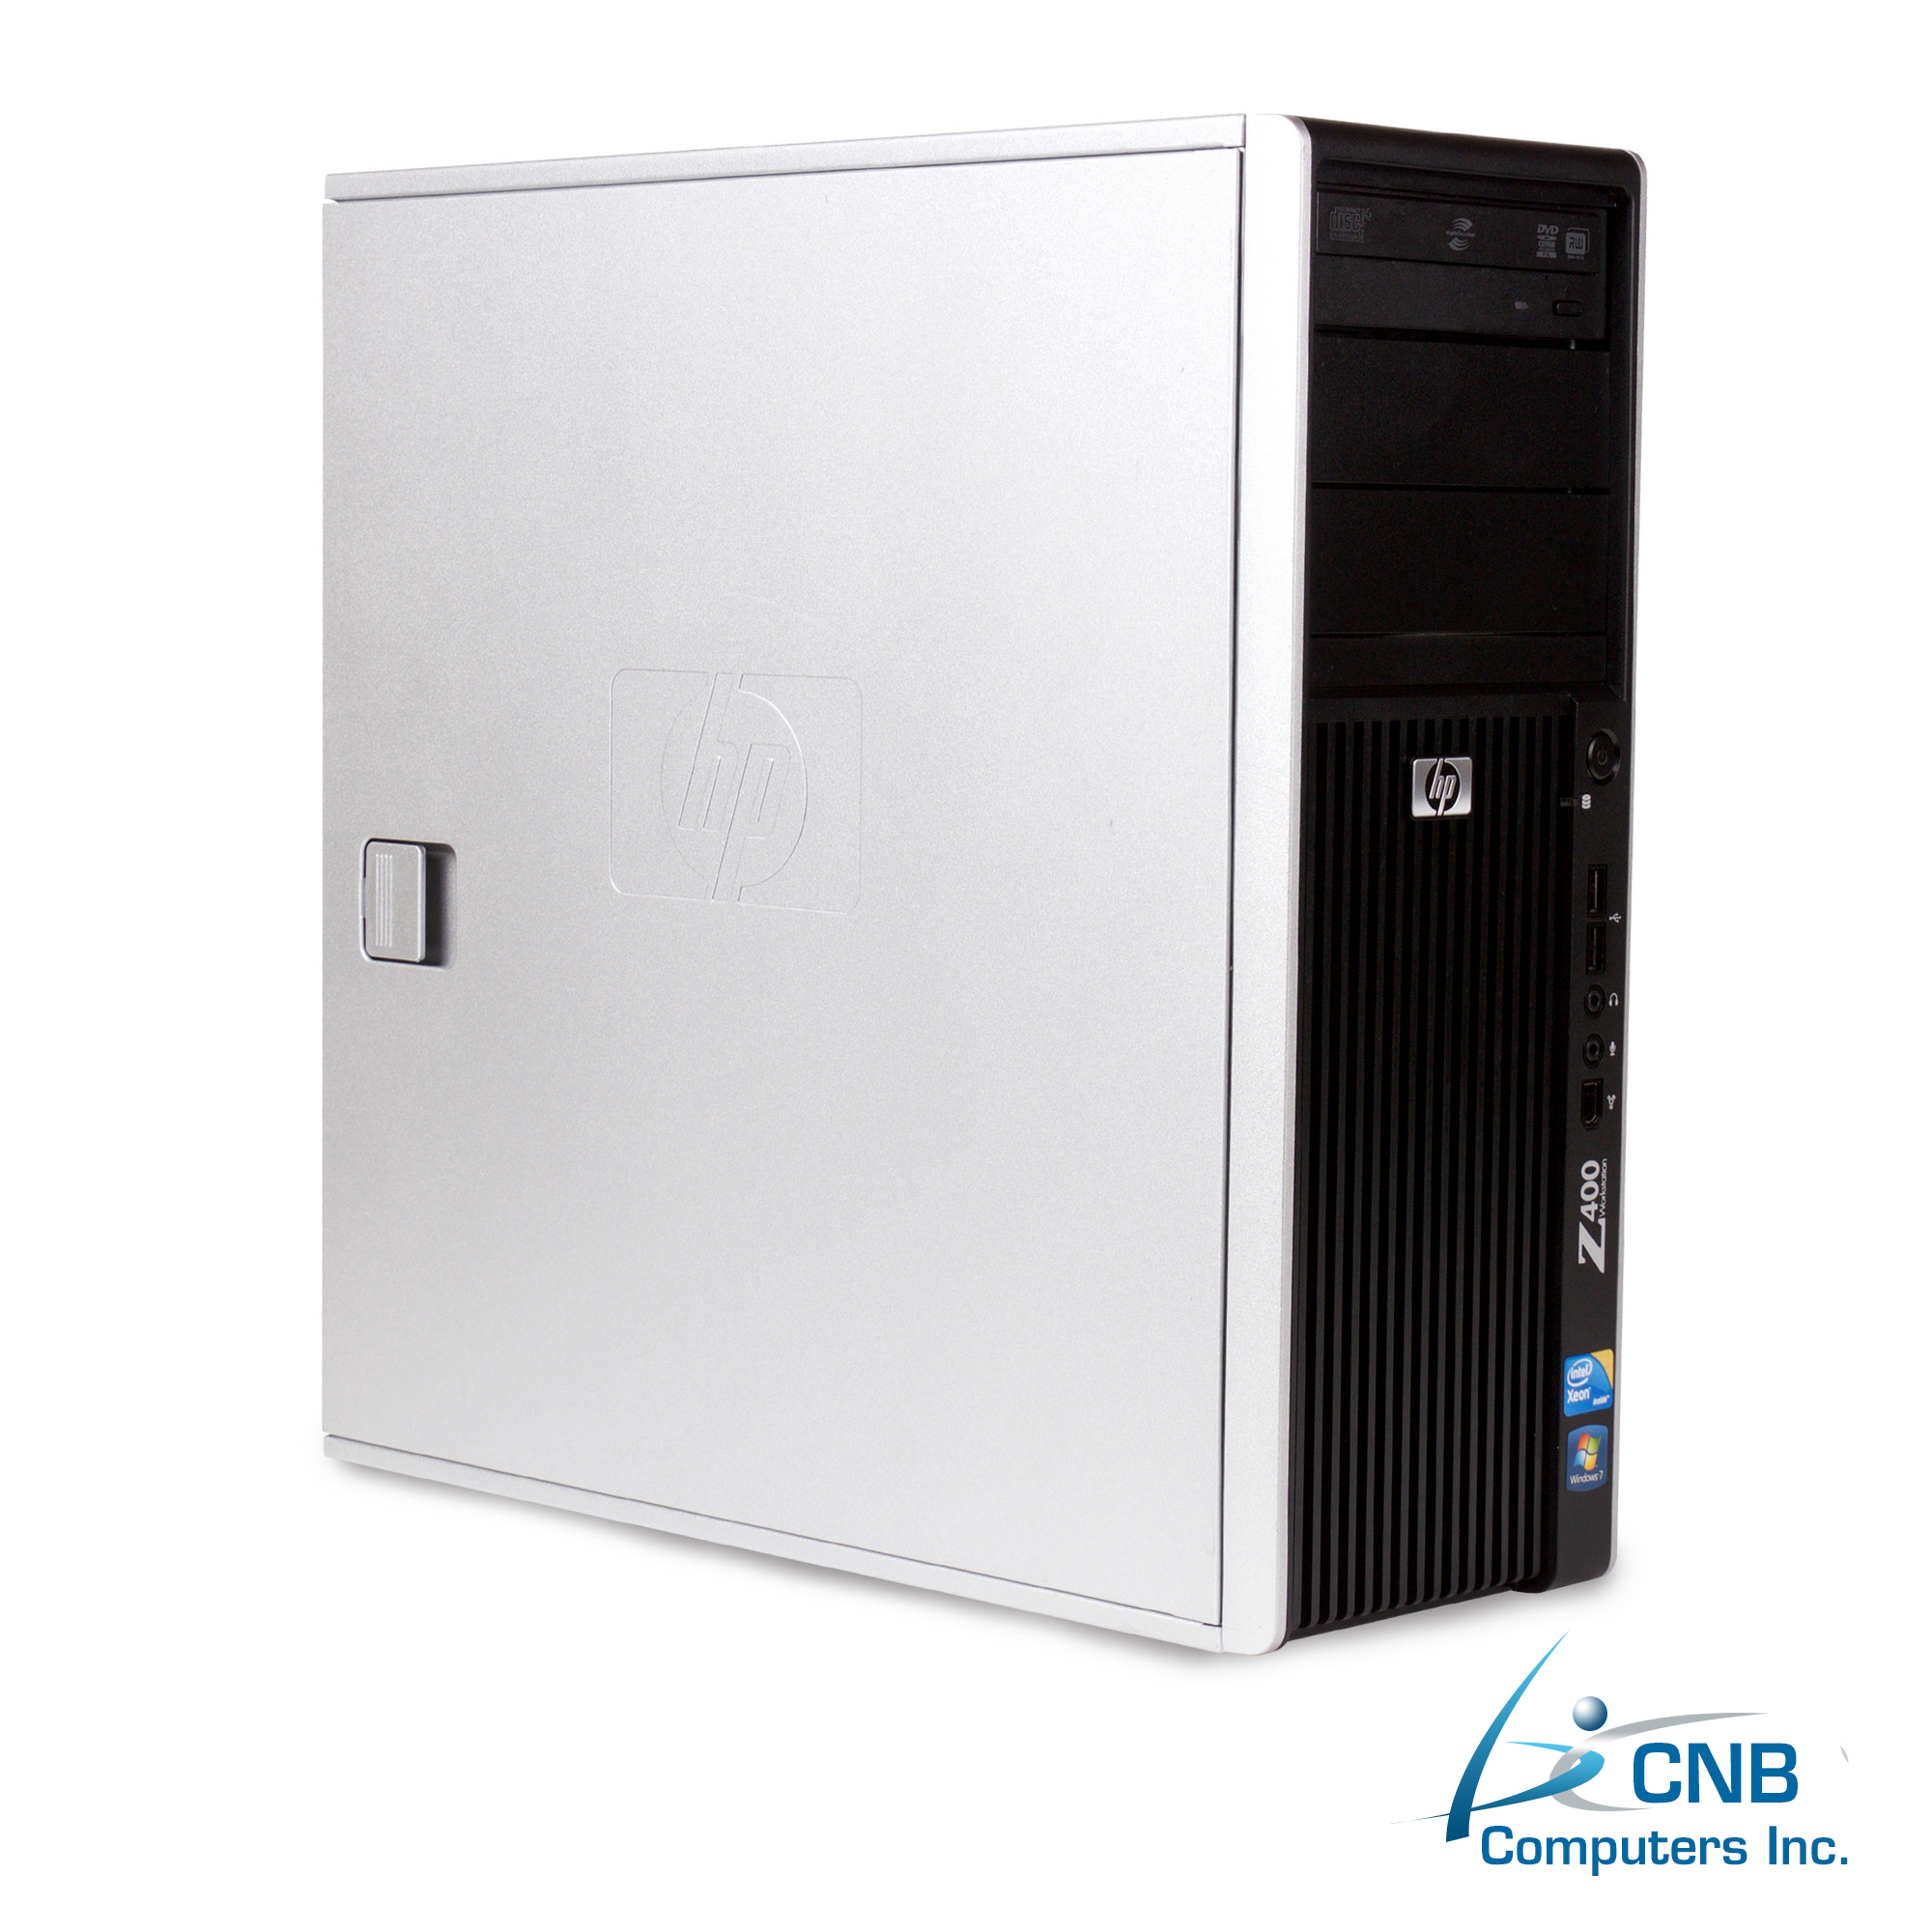 hp z400 workstation 6gb ram 2tb hdd intel xeon cnb. Black Bedroom Furniture Sets. Home Design Ideas